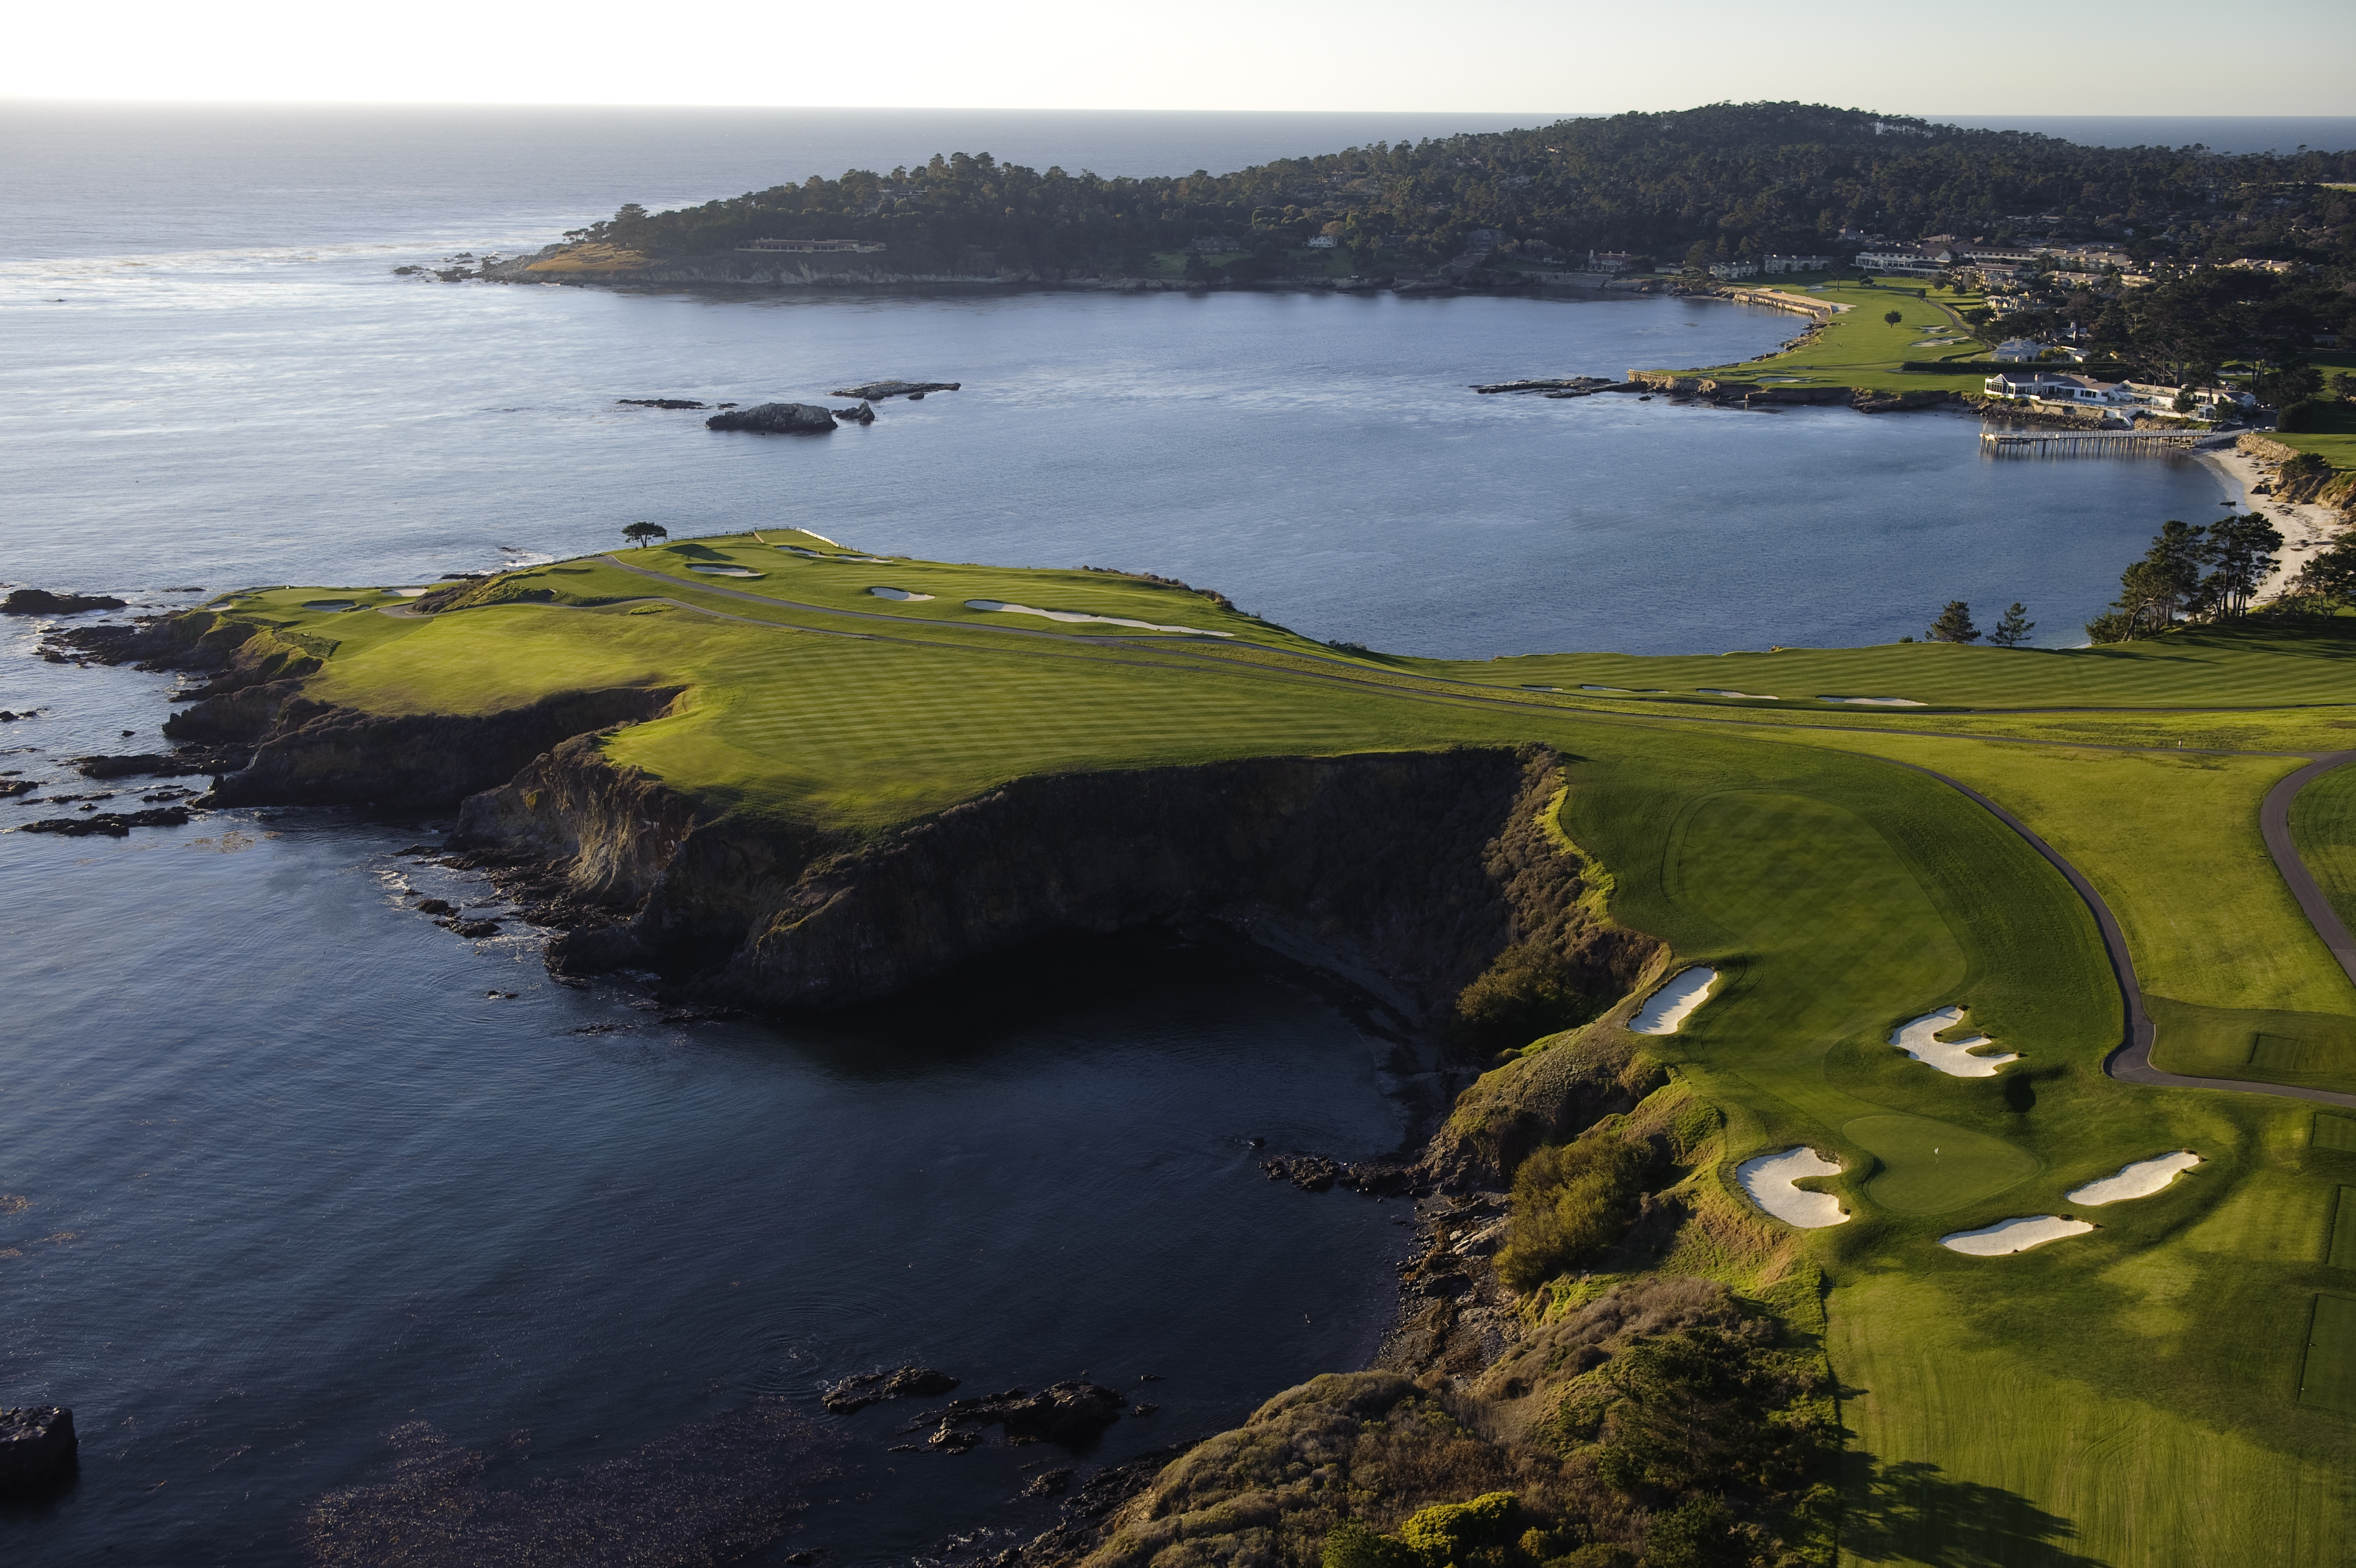 8th hole at Pebble Beach